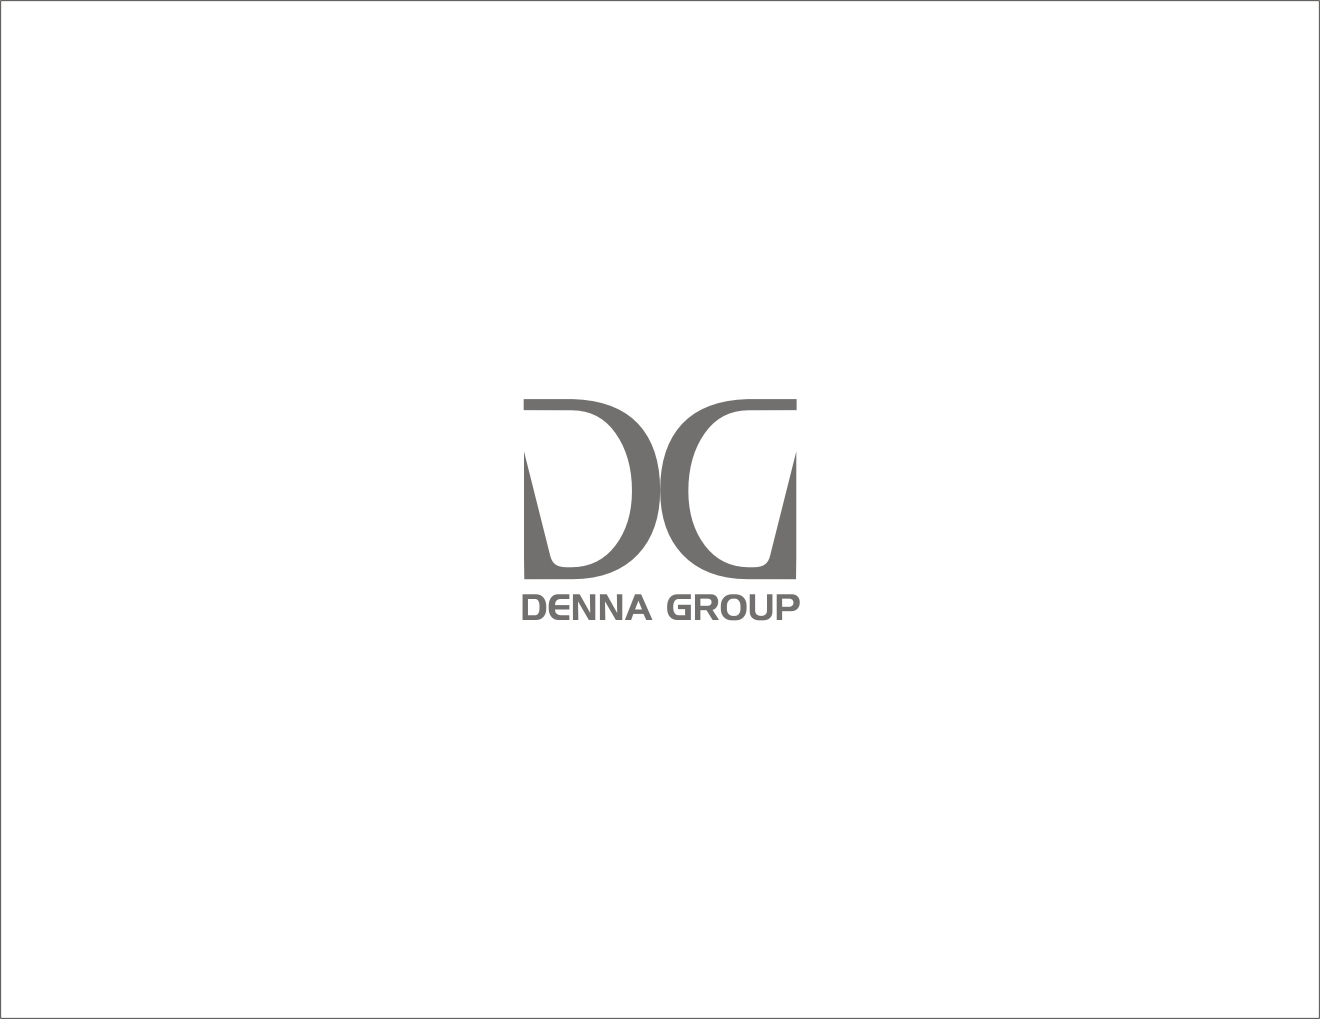 Logo Design by Private User - Entry No. 268 in the Logo Design Contest Denna Group Logo Design.